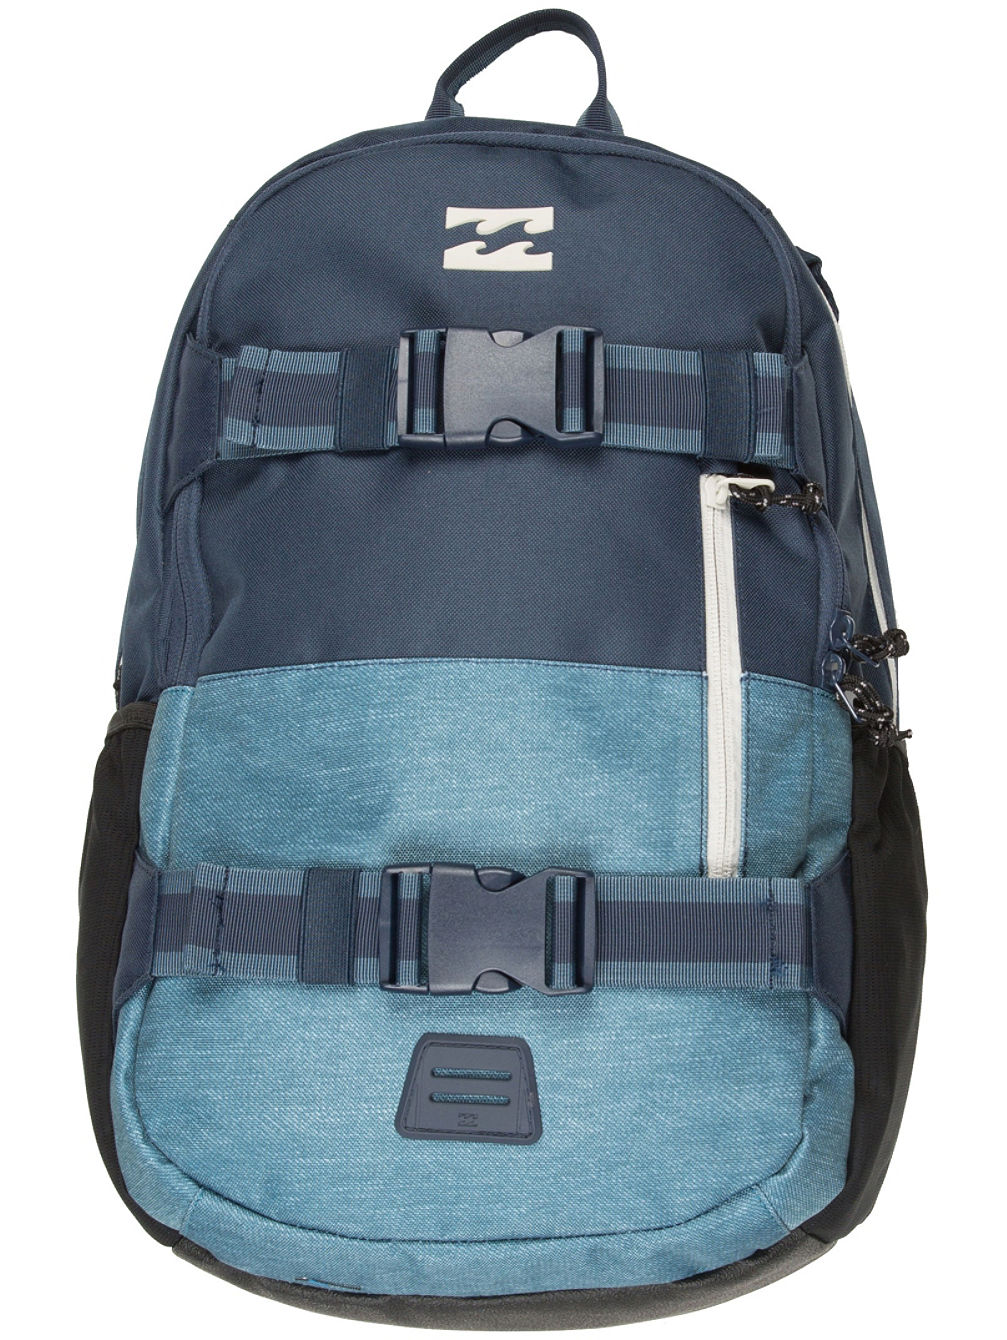 1b65f9a8d885 Buy Billabong Command Skate Backpack online at blue-tomato.com